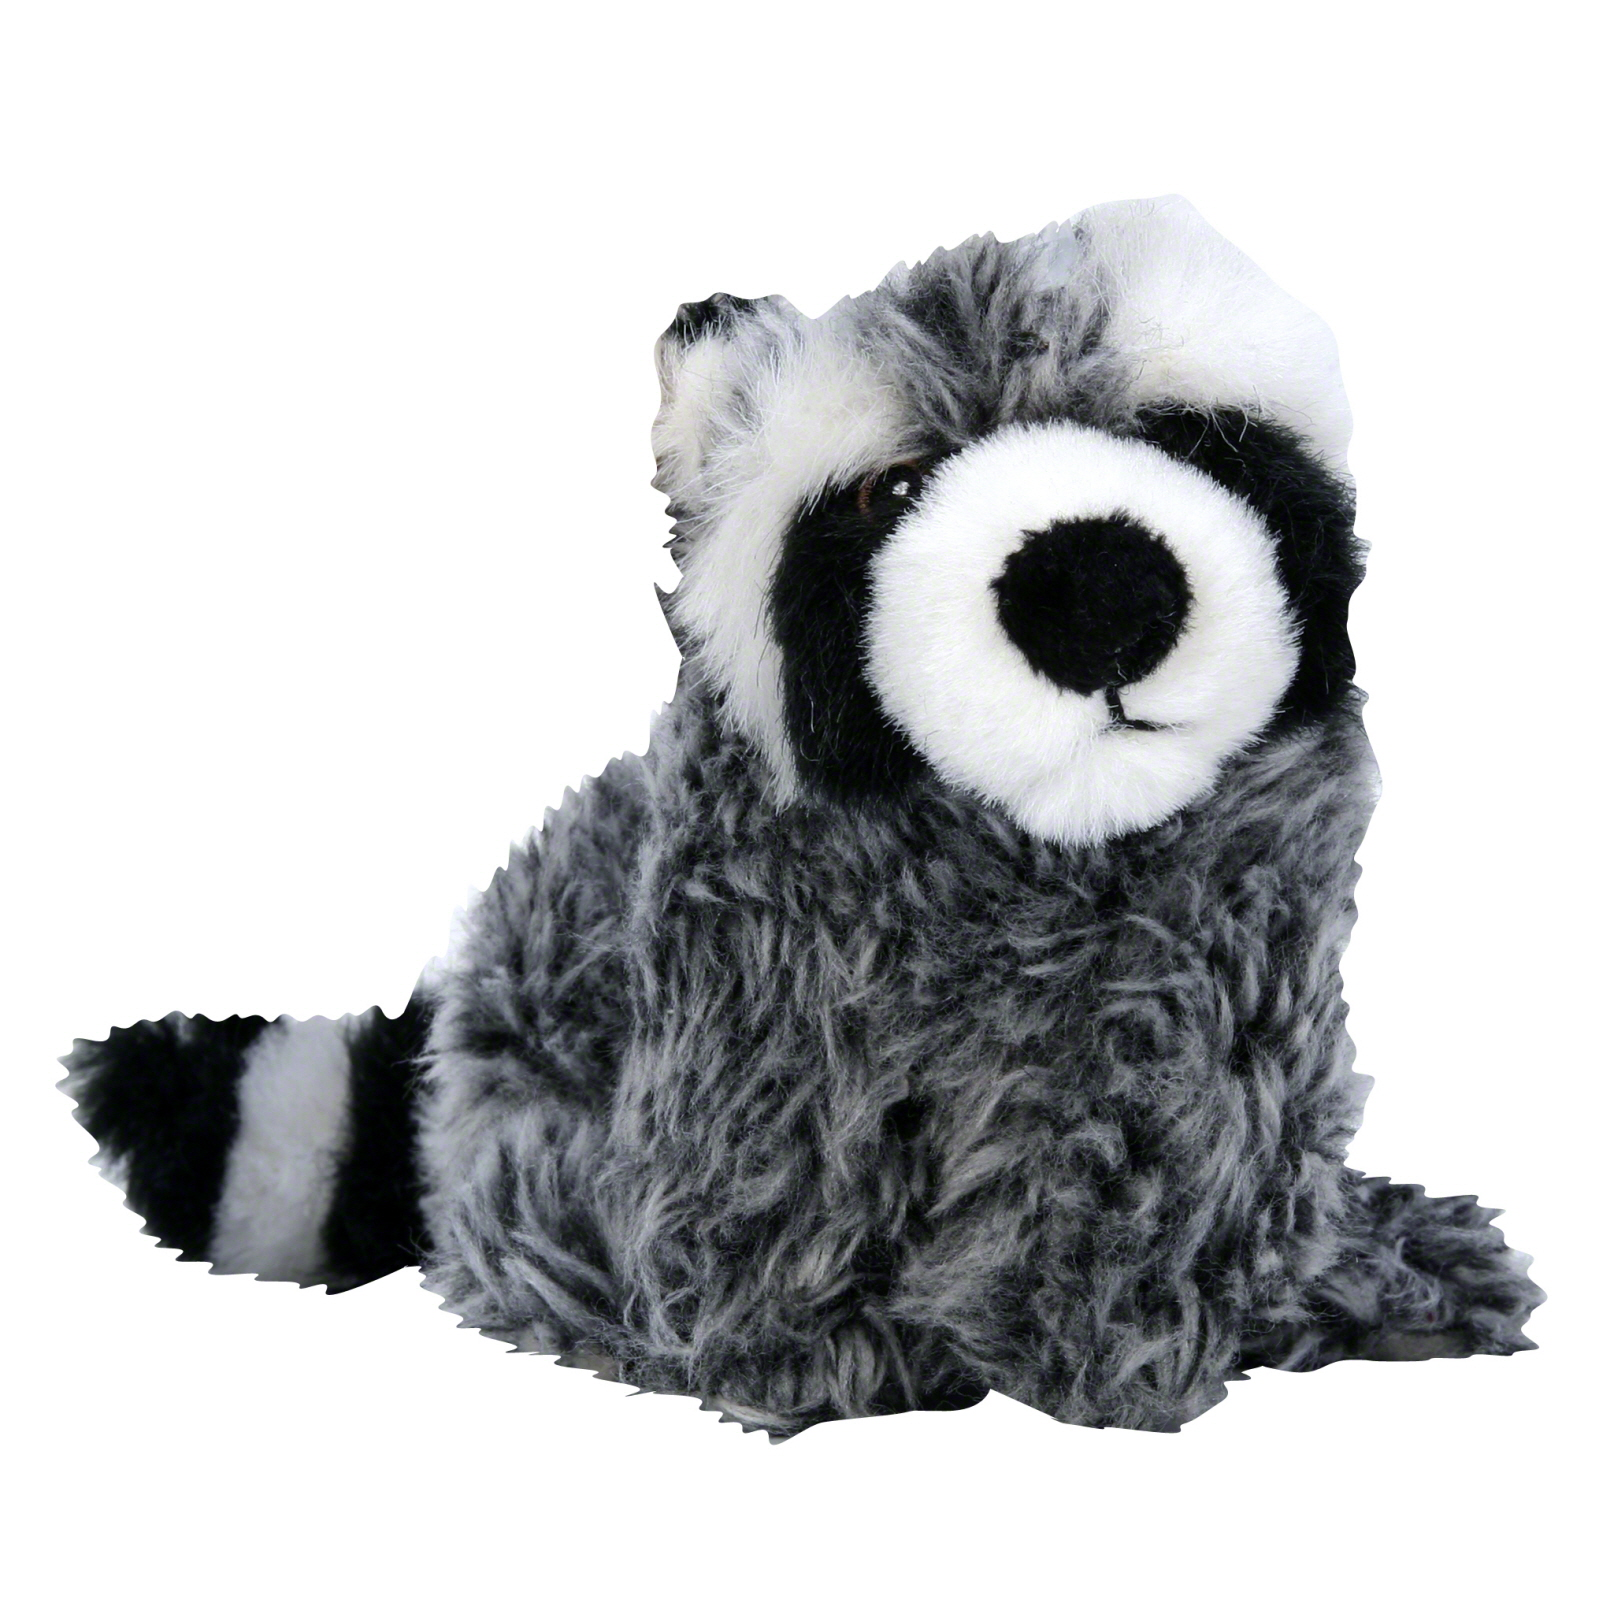 Hartz Nature's Collection Small Plush Dog Toy, 1 toy PartNumber: 029W719503110001P KsnValue: 029W719503110001 MfgPartNumber: 04355